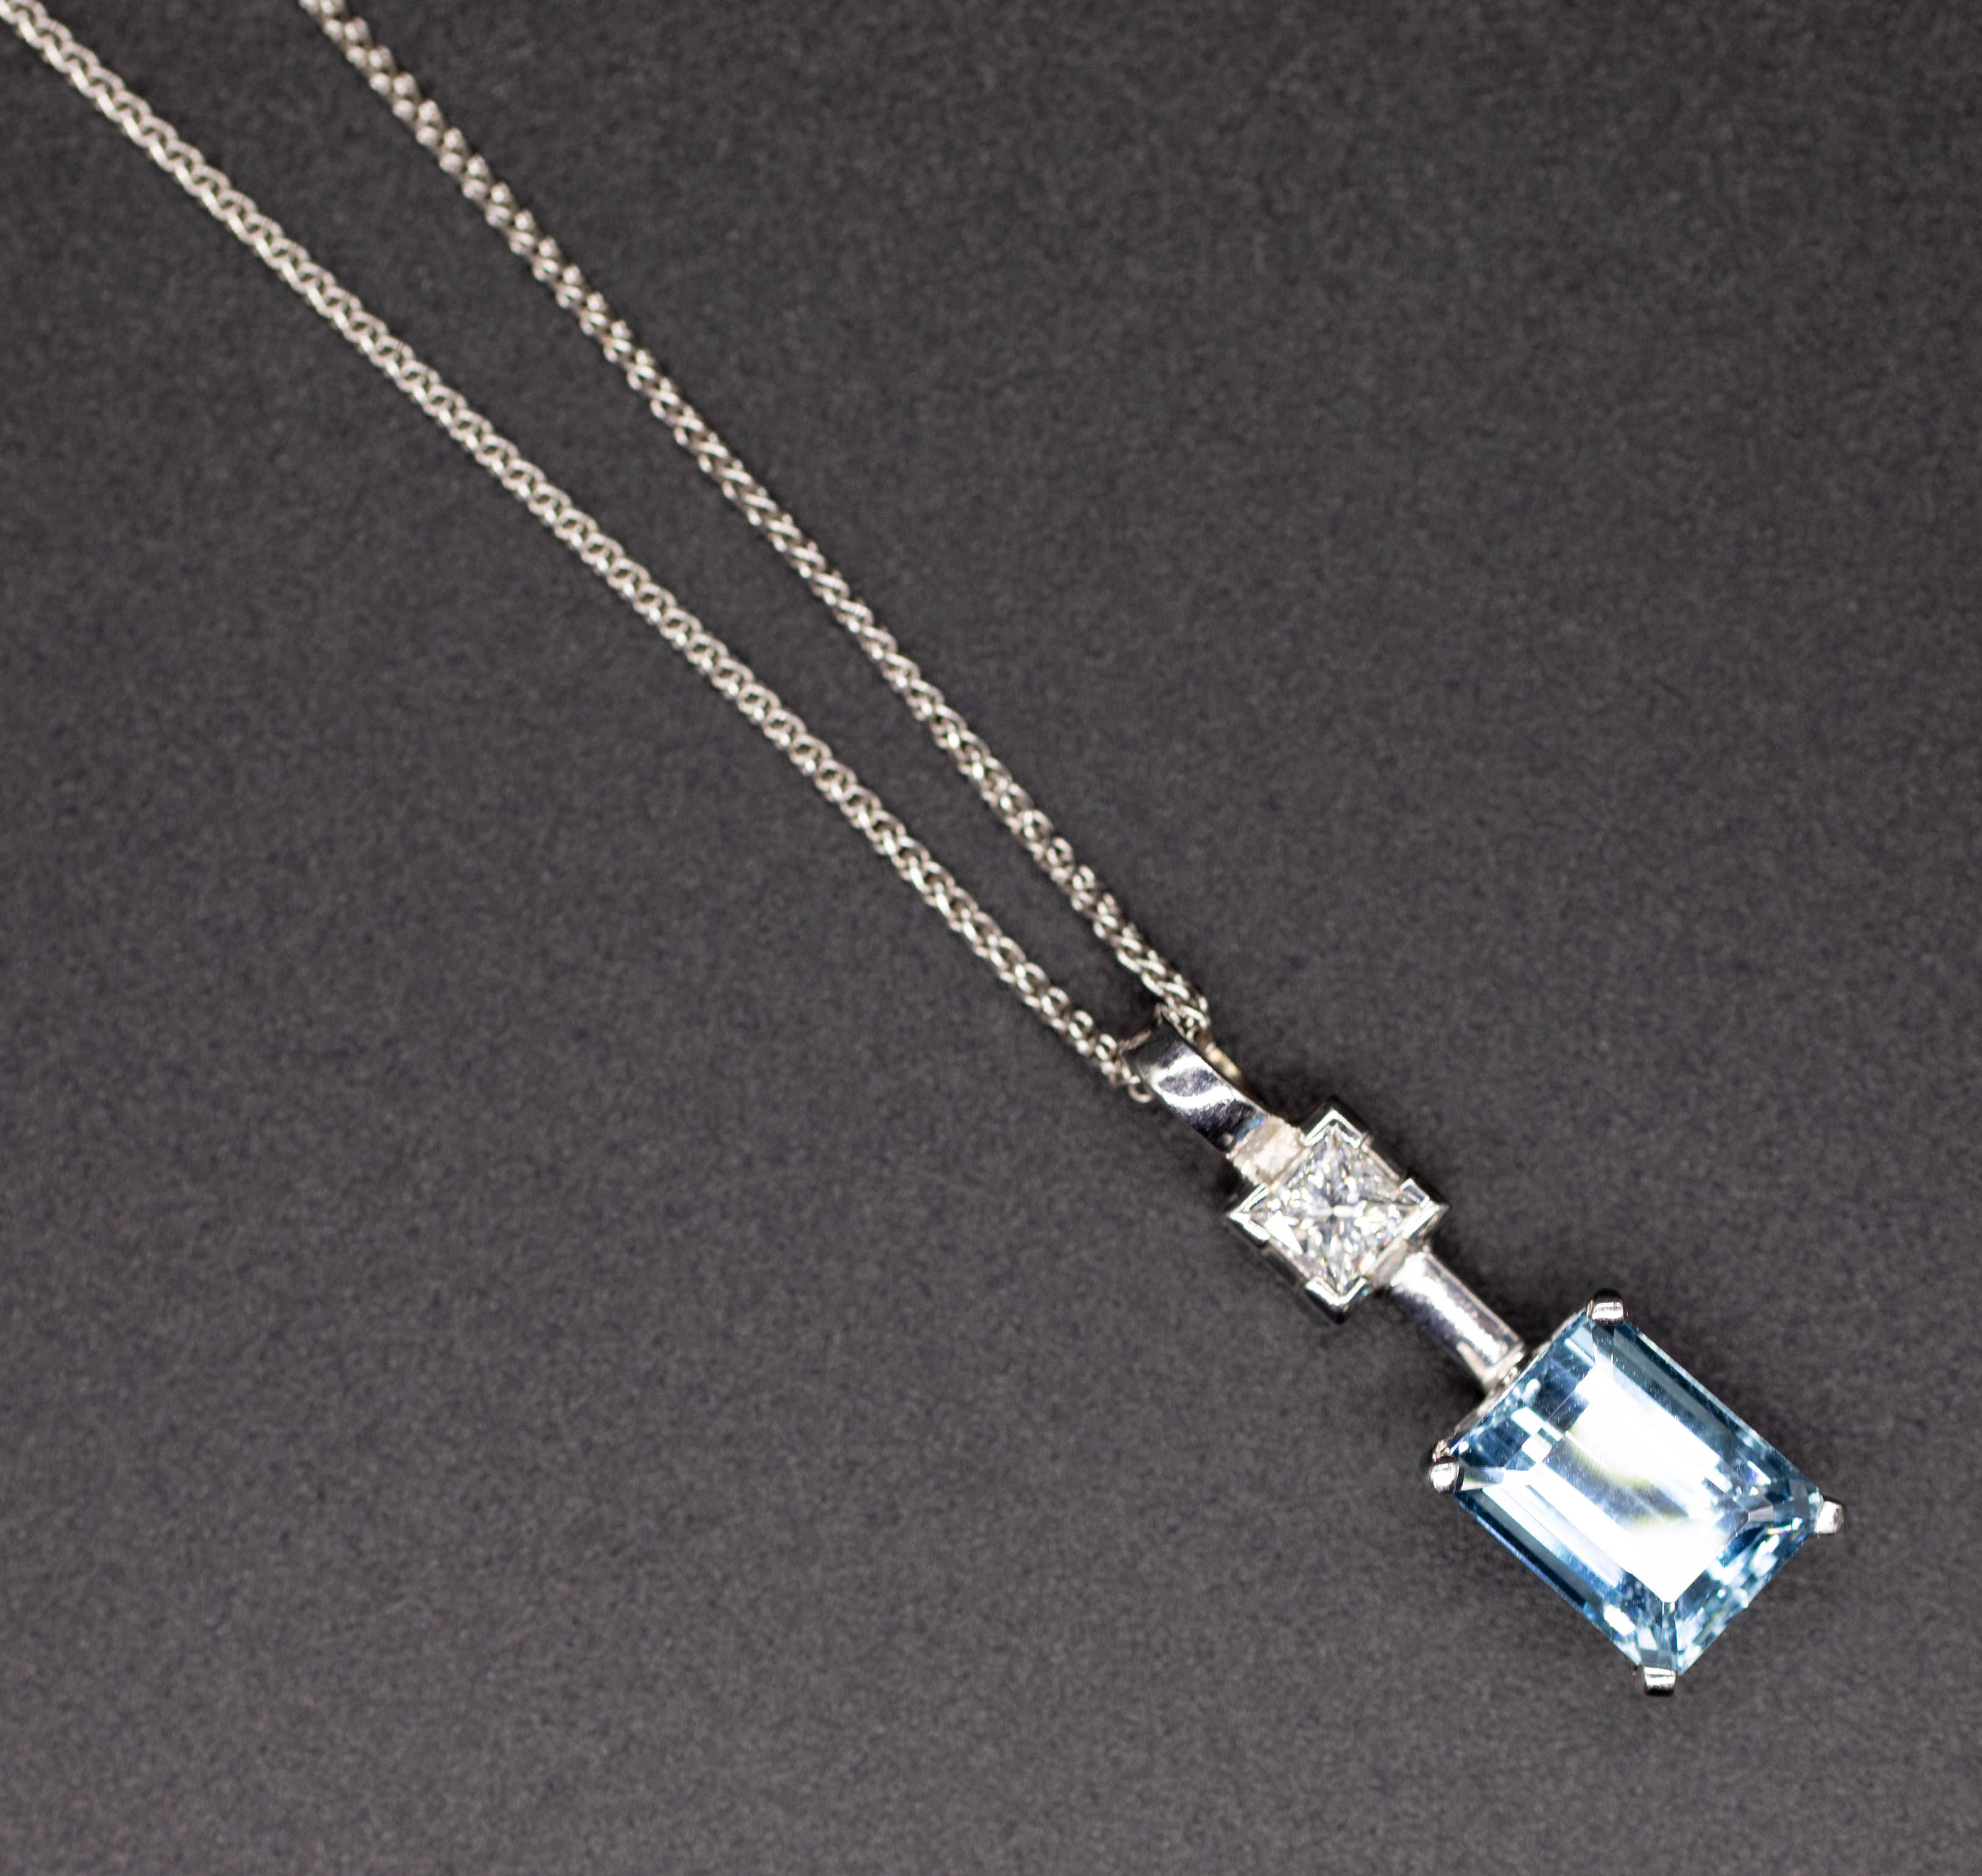 An 18ct aquamarine and diamond set pendant in white gold, on fine chain.